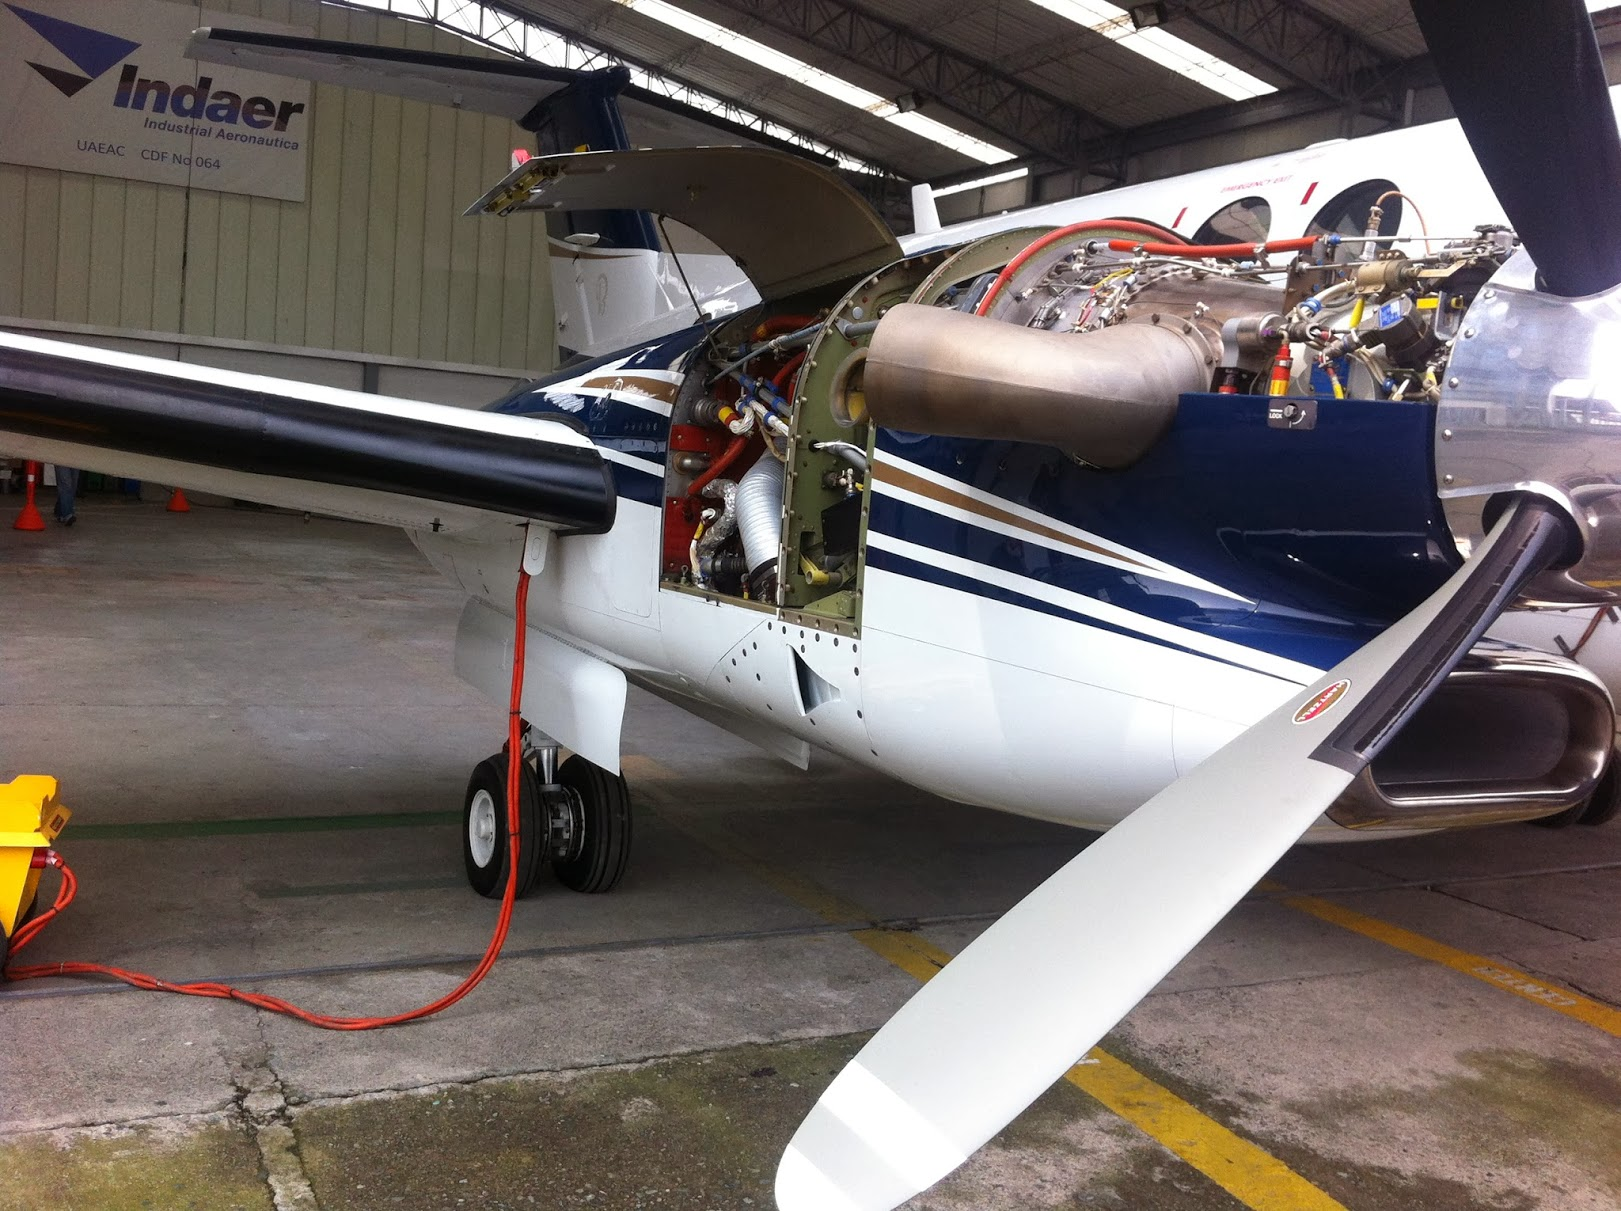 King Air Troubleshooting